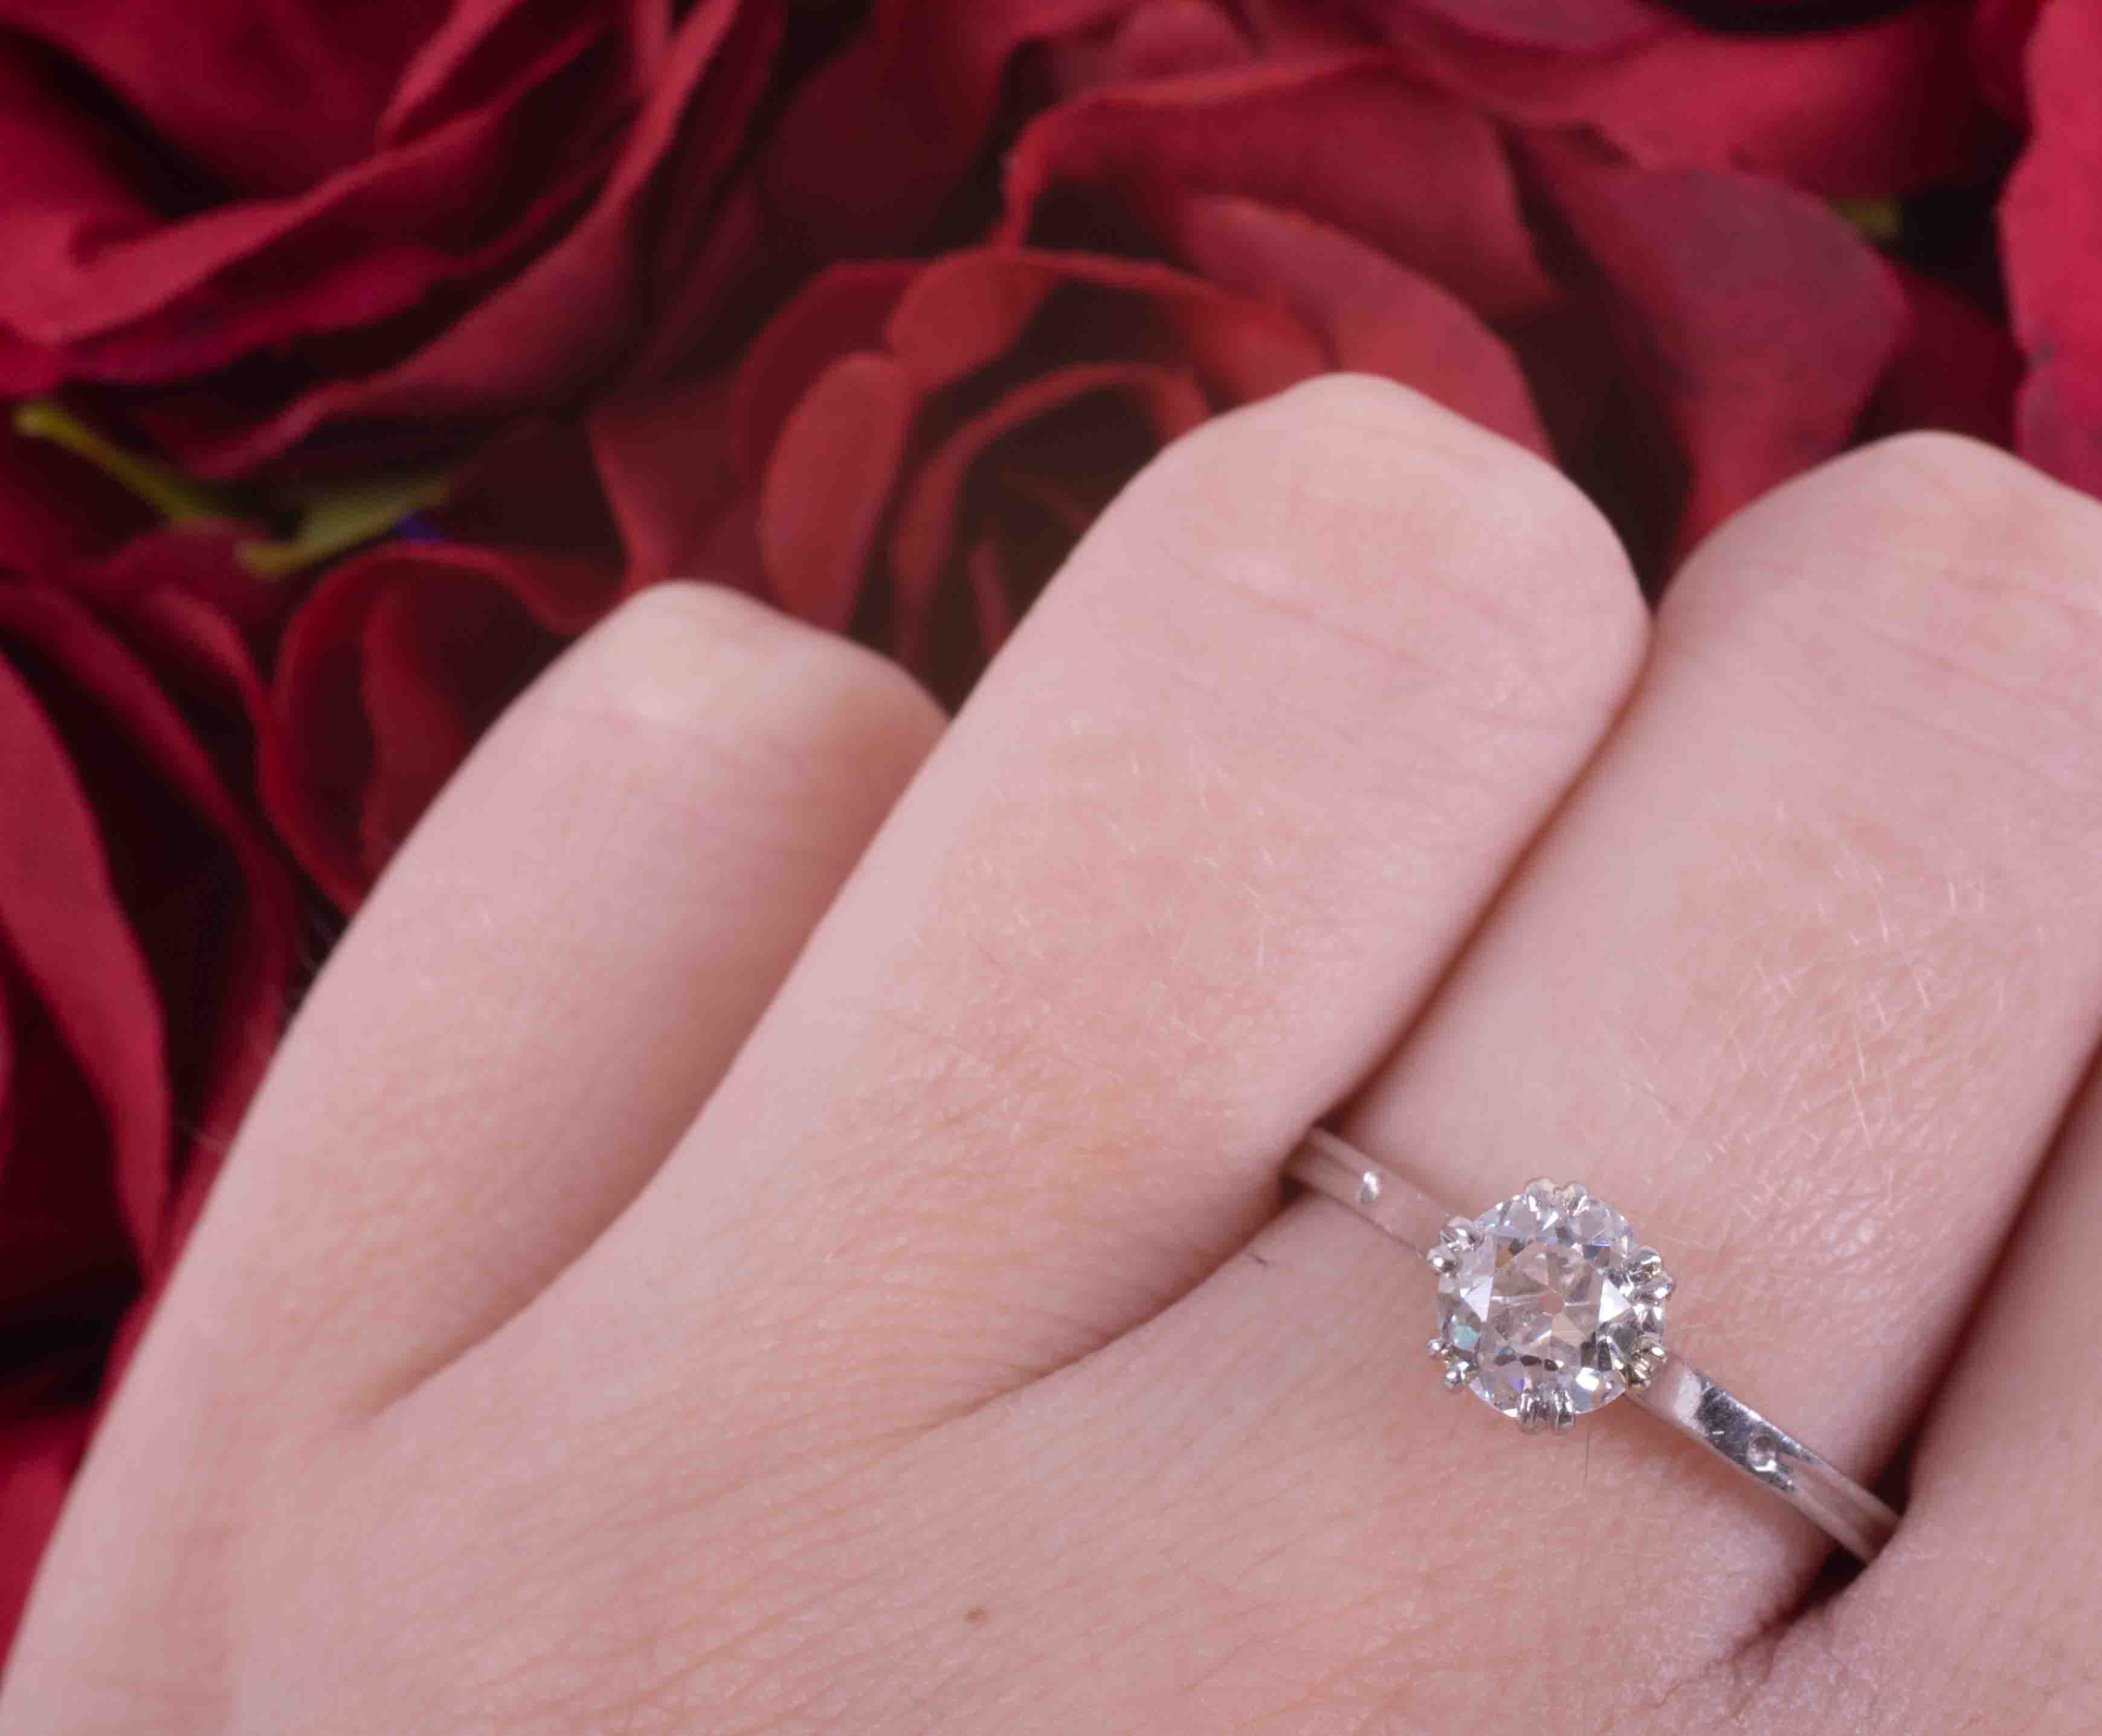 A platinum single stone ring with set with approx. 0.81 carats of old round cut diamond, colour H- - Image 3 of 4